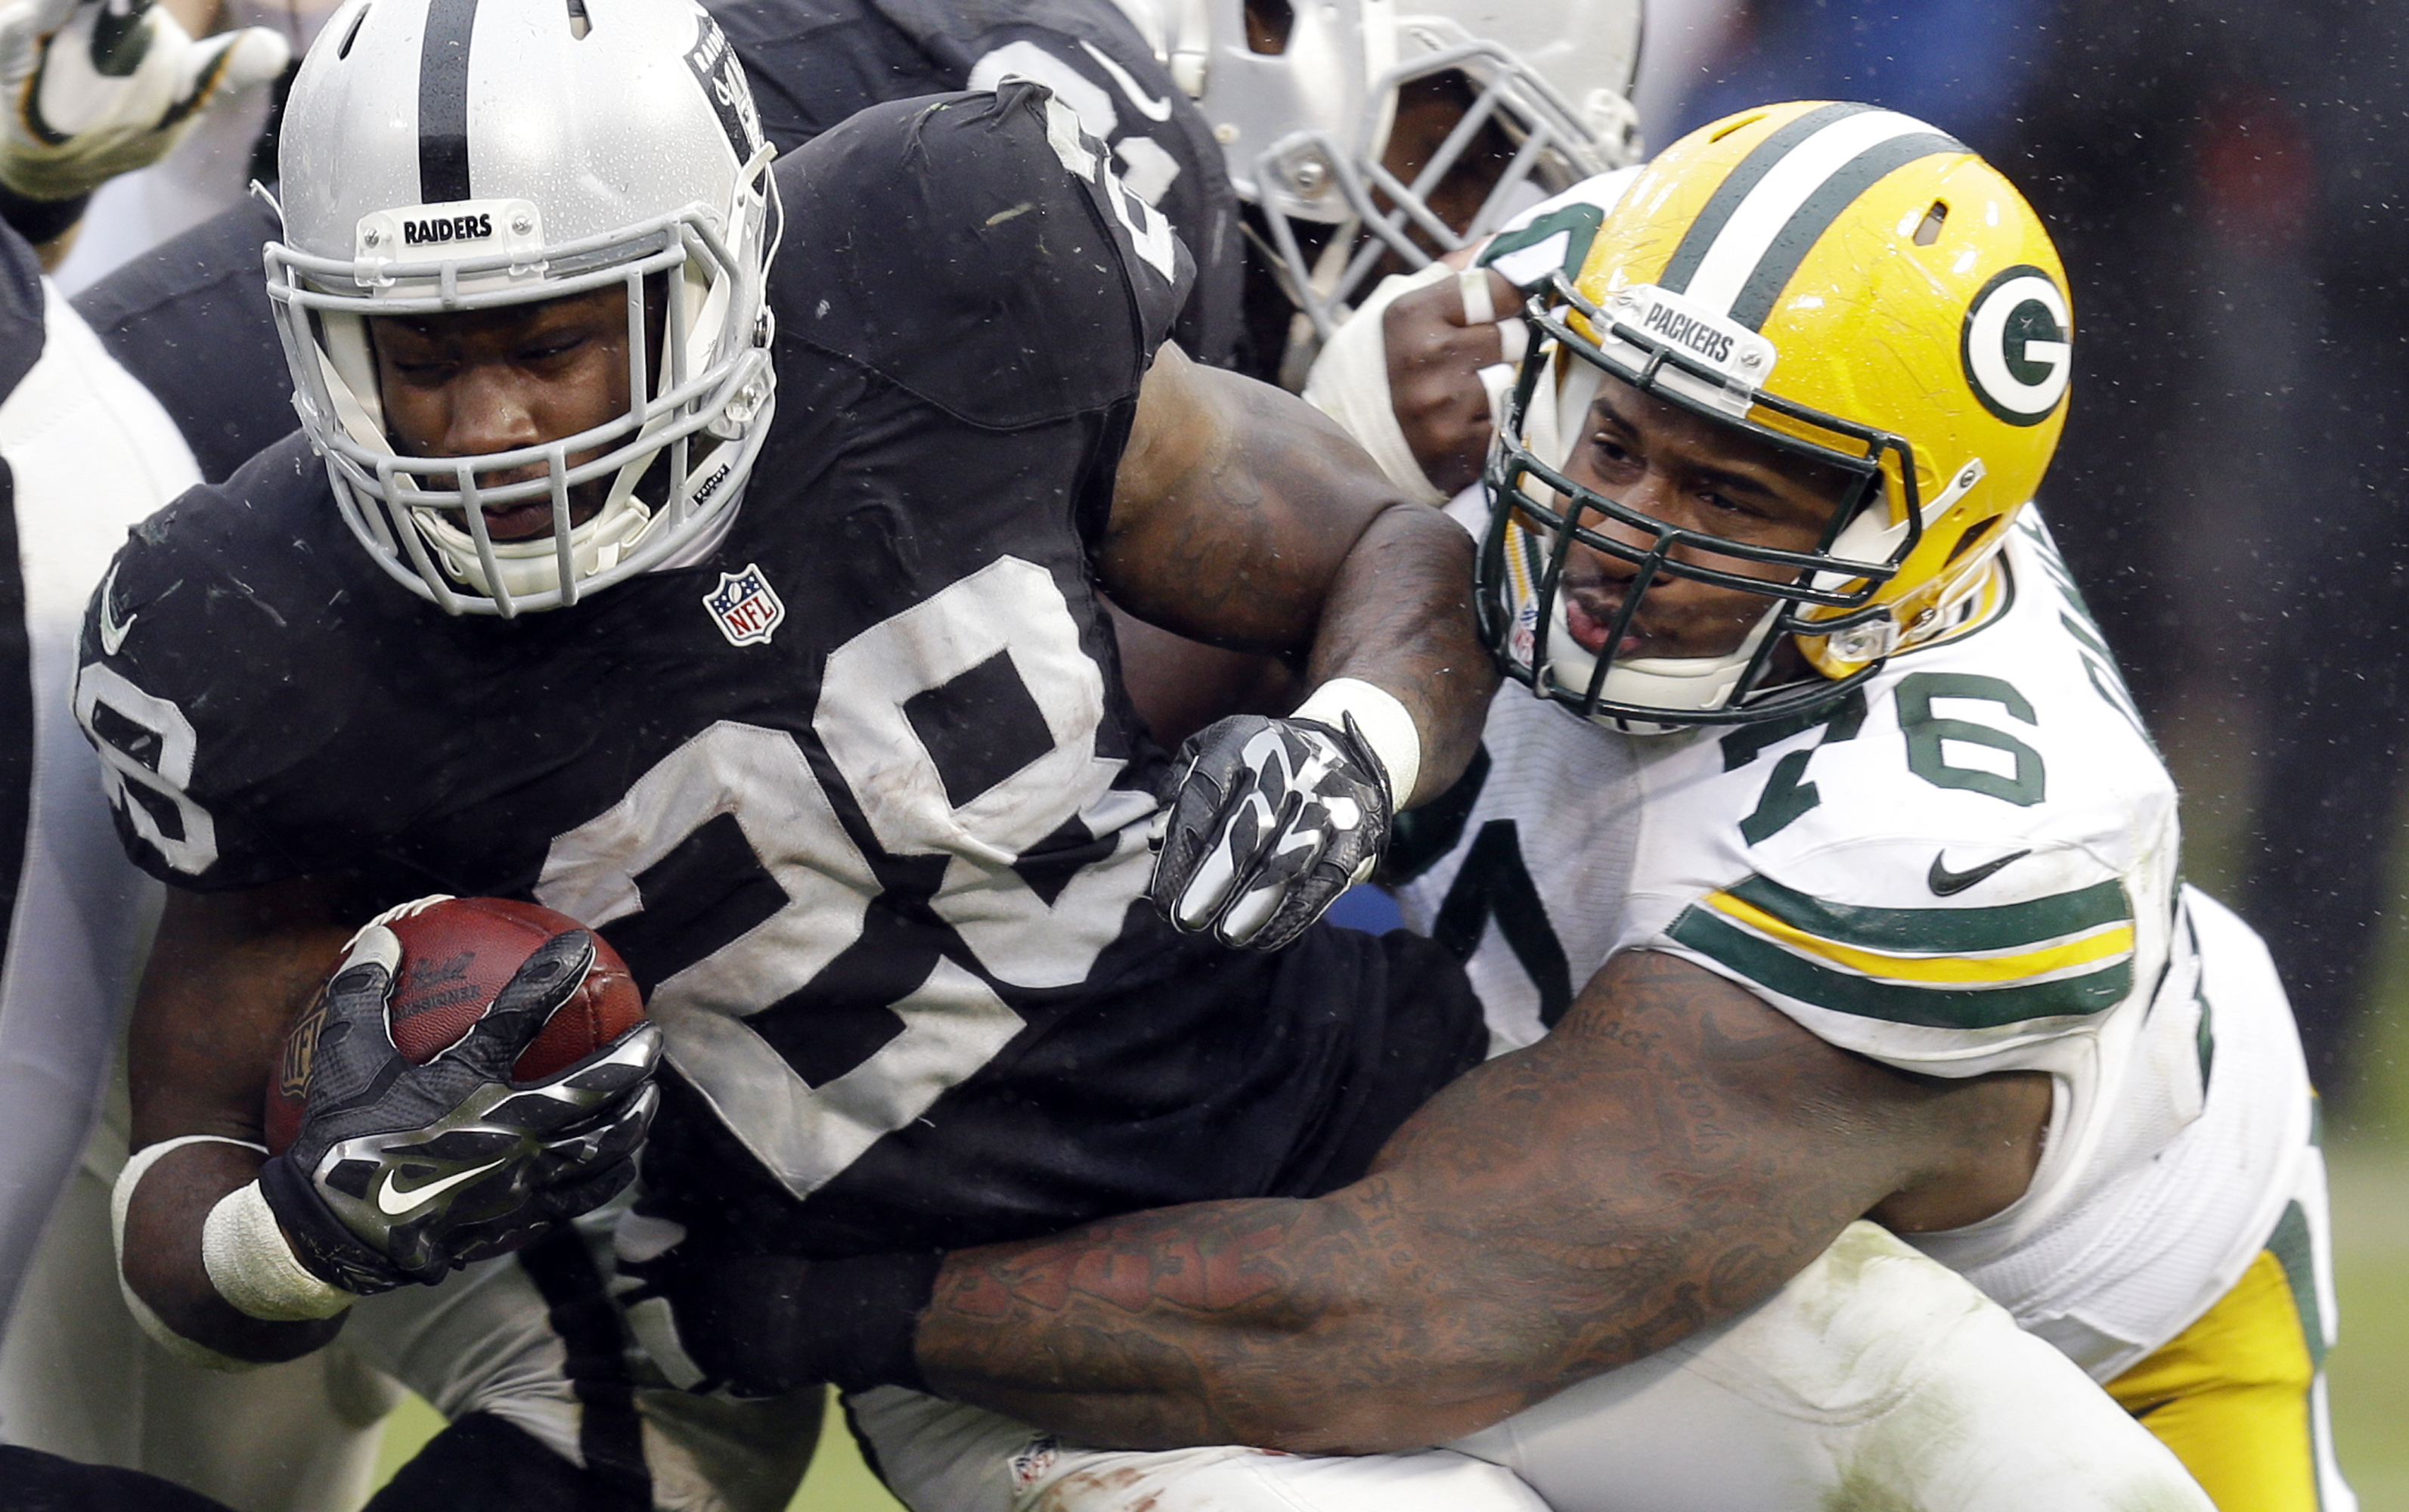 FILE - In this Dec. 20, 2015, file photo, Oakland Raiders running back Latavius Murray (28) is tackled by Green Bay Packers defensive end Mike Daniels (76) during the second half of an NFL football game in Oakland, Calif. With a playoff berth assured, the